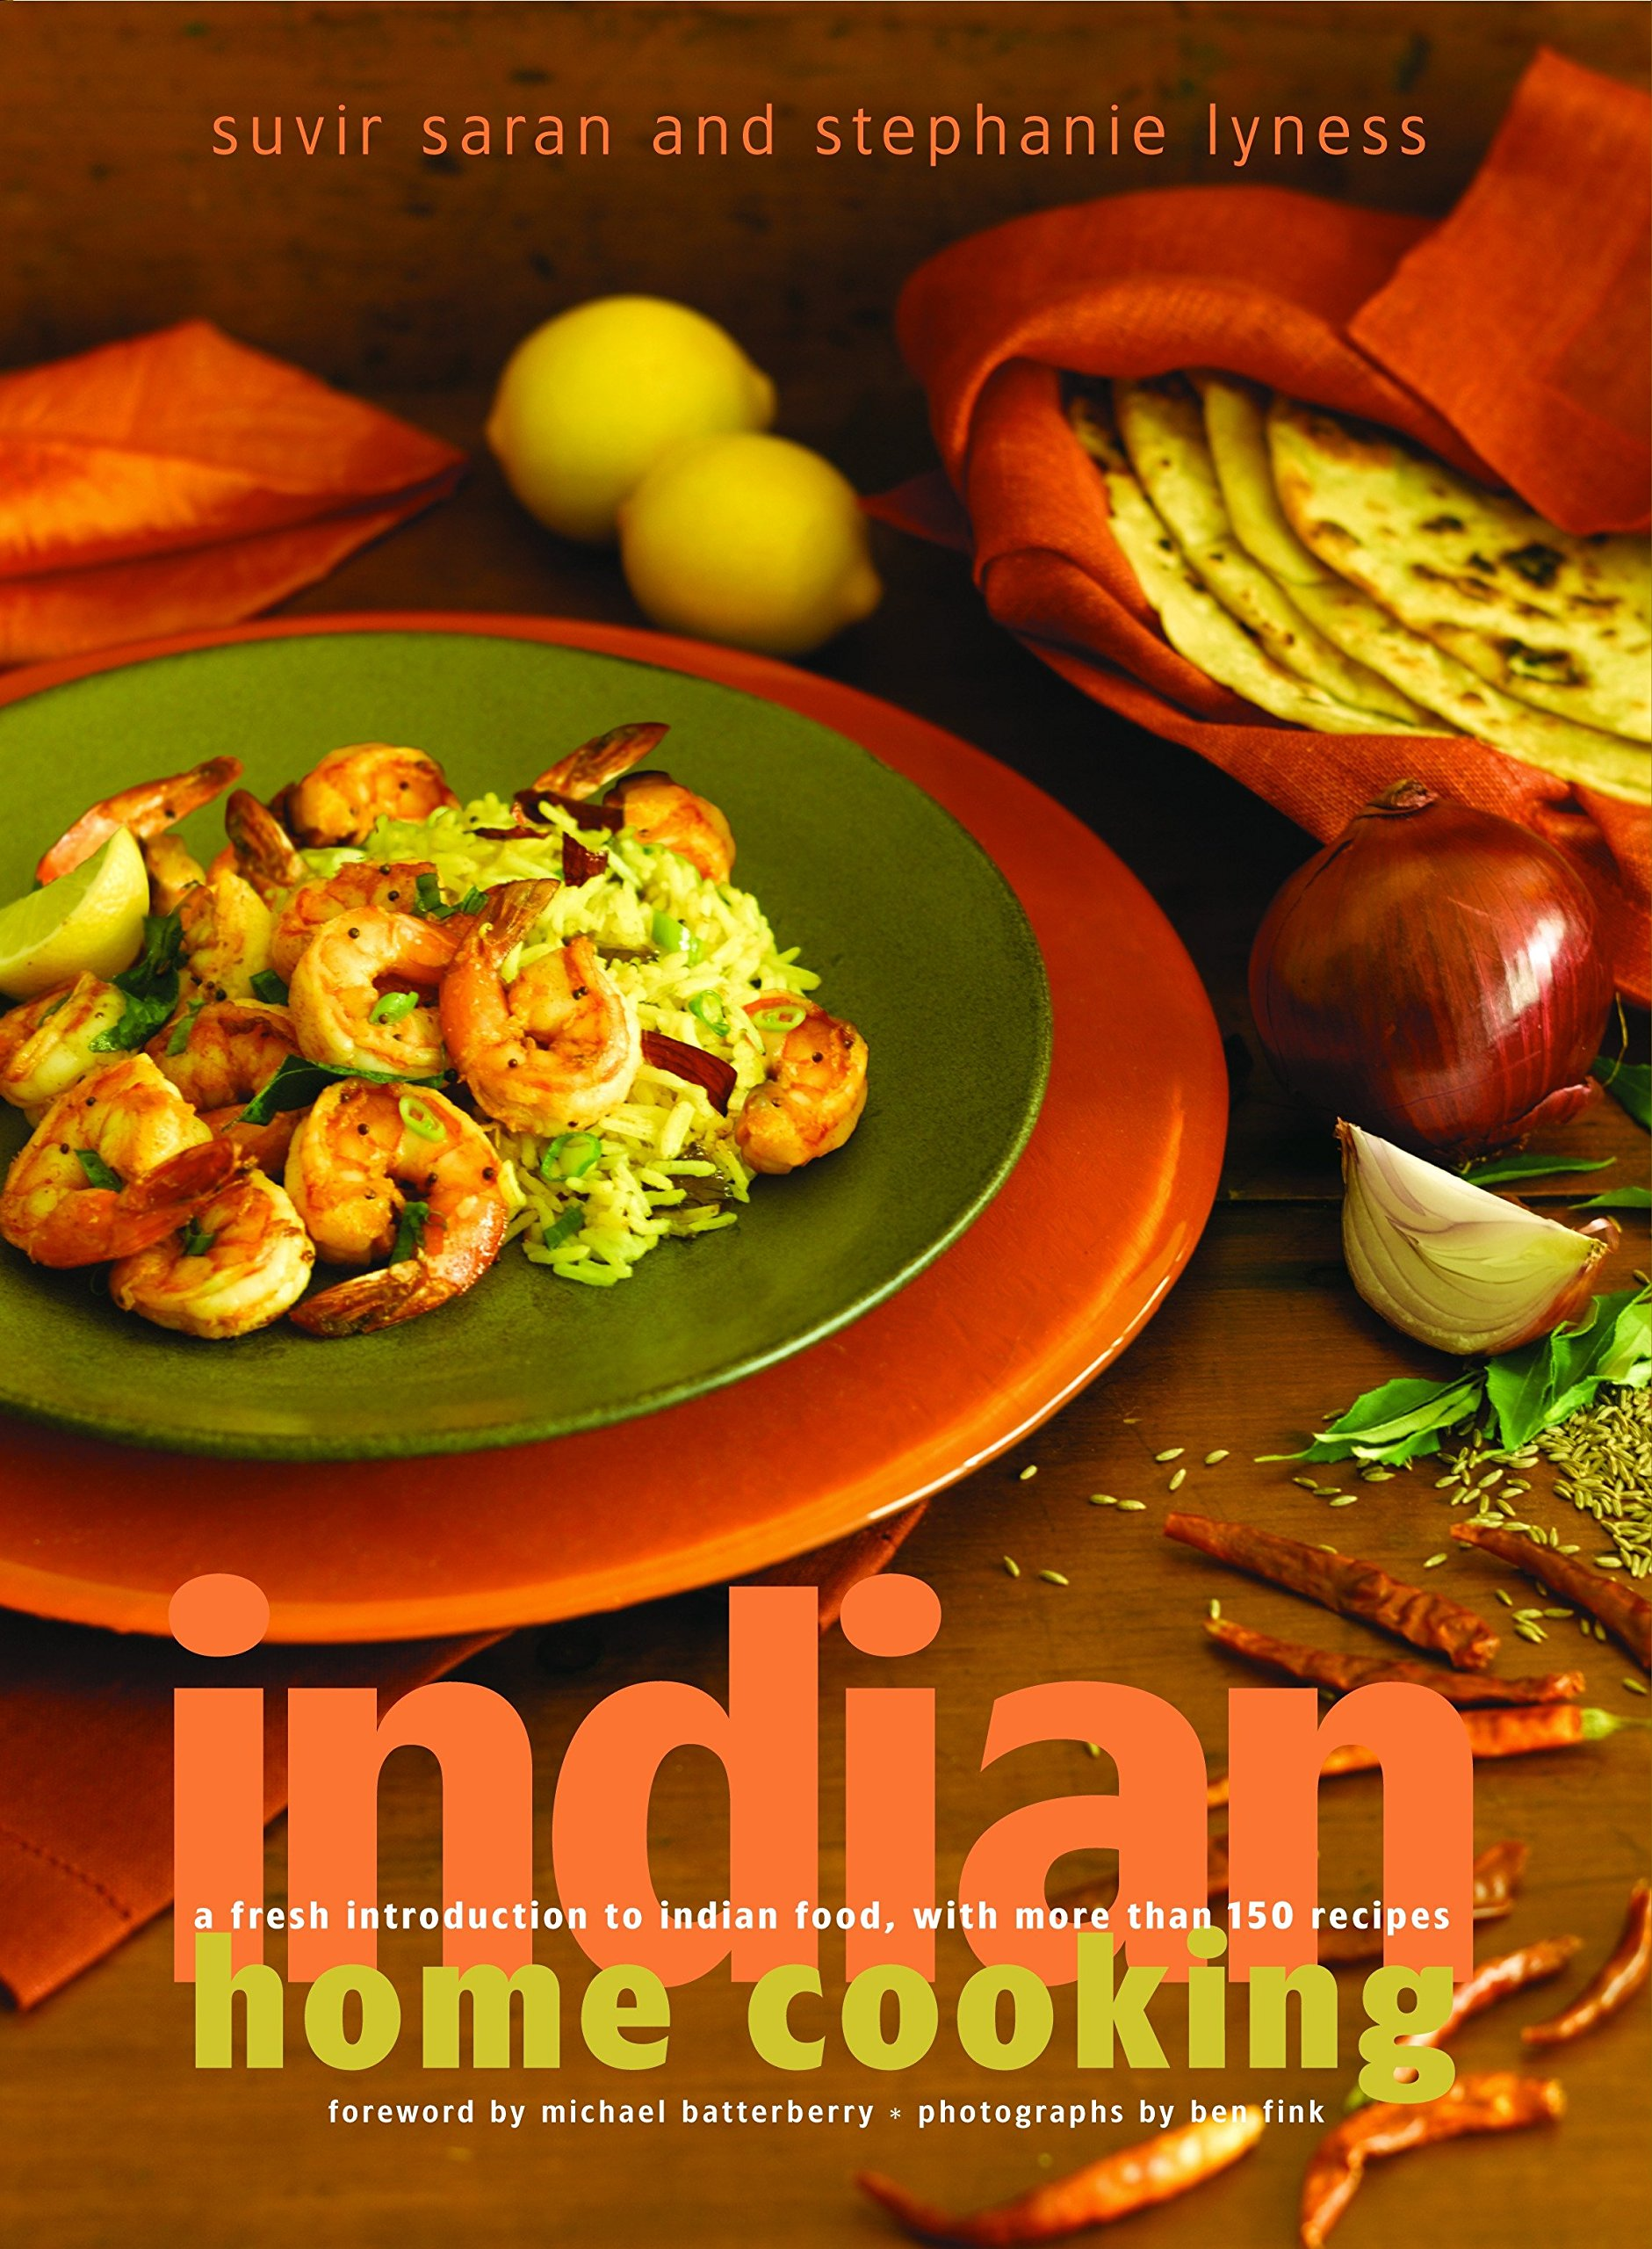 Indian home cooking a fresh introduction to indian food with more indian home cooking a fresh introduction to indian food with more than 150 recipes suvir saran stephanie lyness 9780609611012 amazon books forumfinder Images